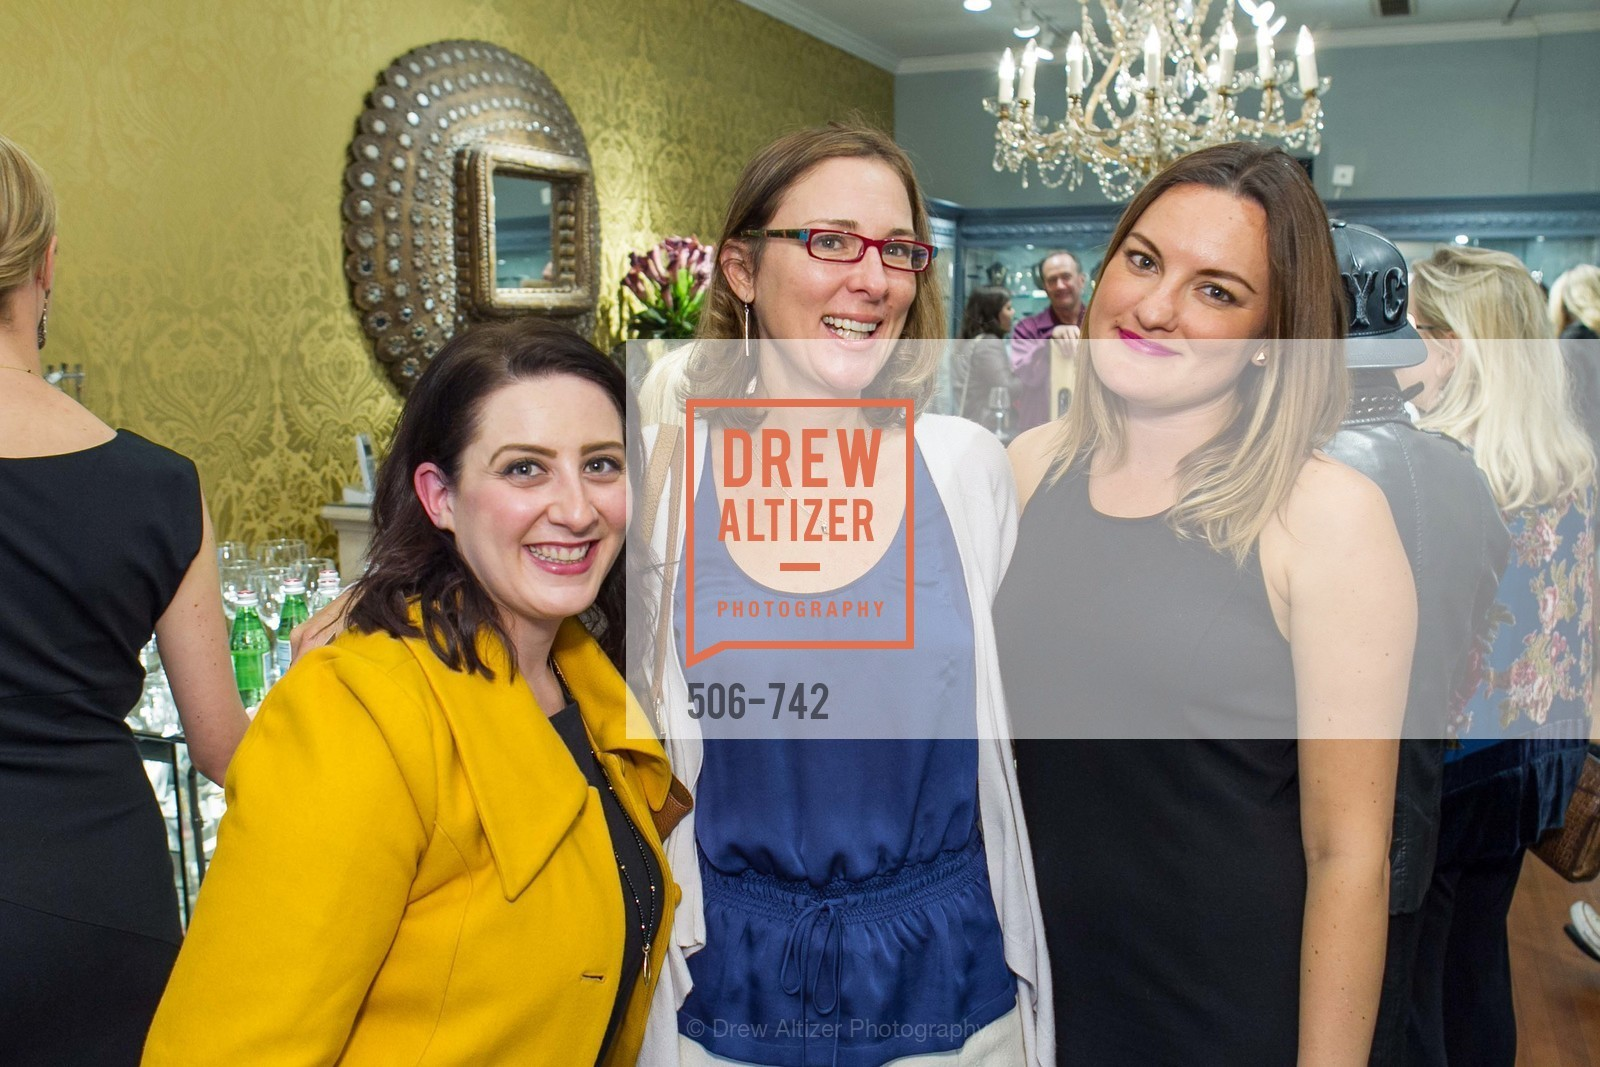 Gia Barsi, Julie Sims, Rena Ramirez, LUXETIGERS & GALLERY OF JEWELS Benefit for Dress for Success, US, May 20th, 2015,Drew Altizer, Drew Altizer Photography, full-service agency, private events, San Francisco photographer, photographer california